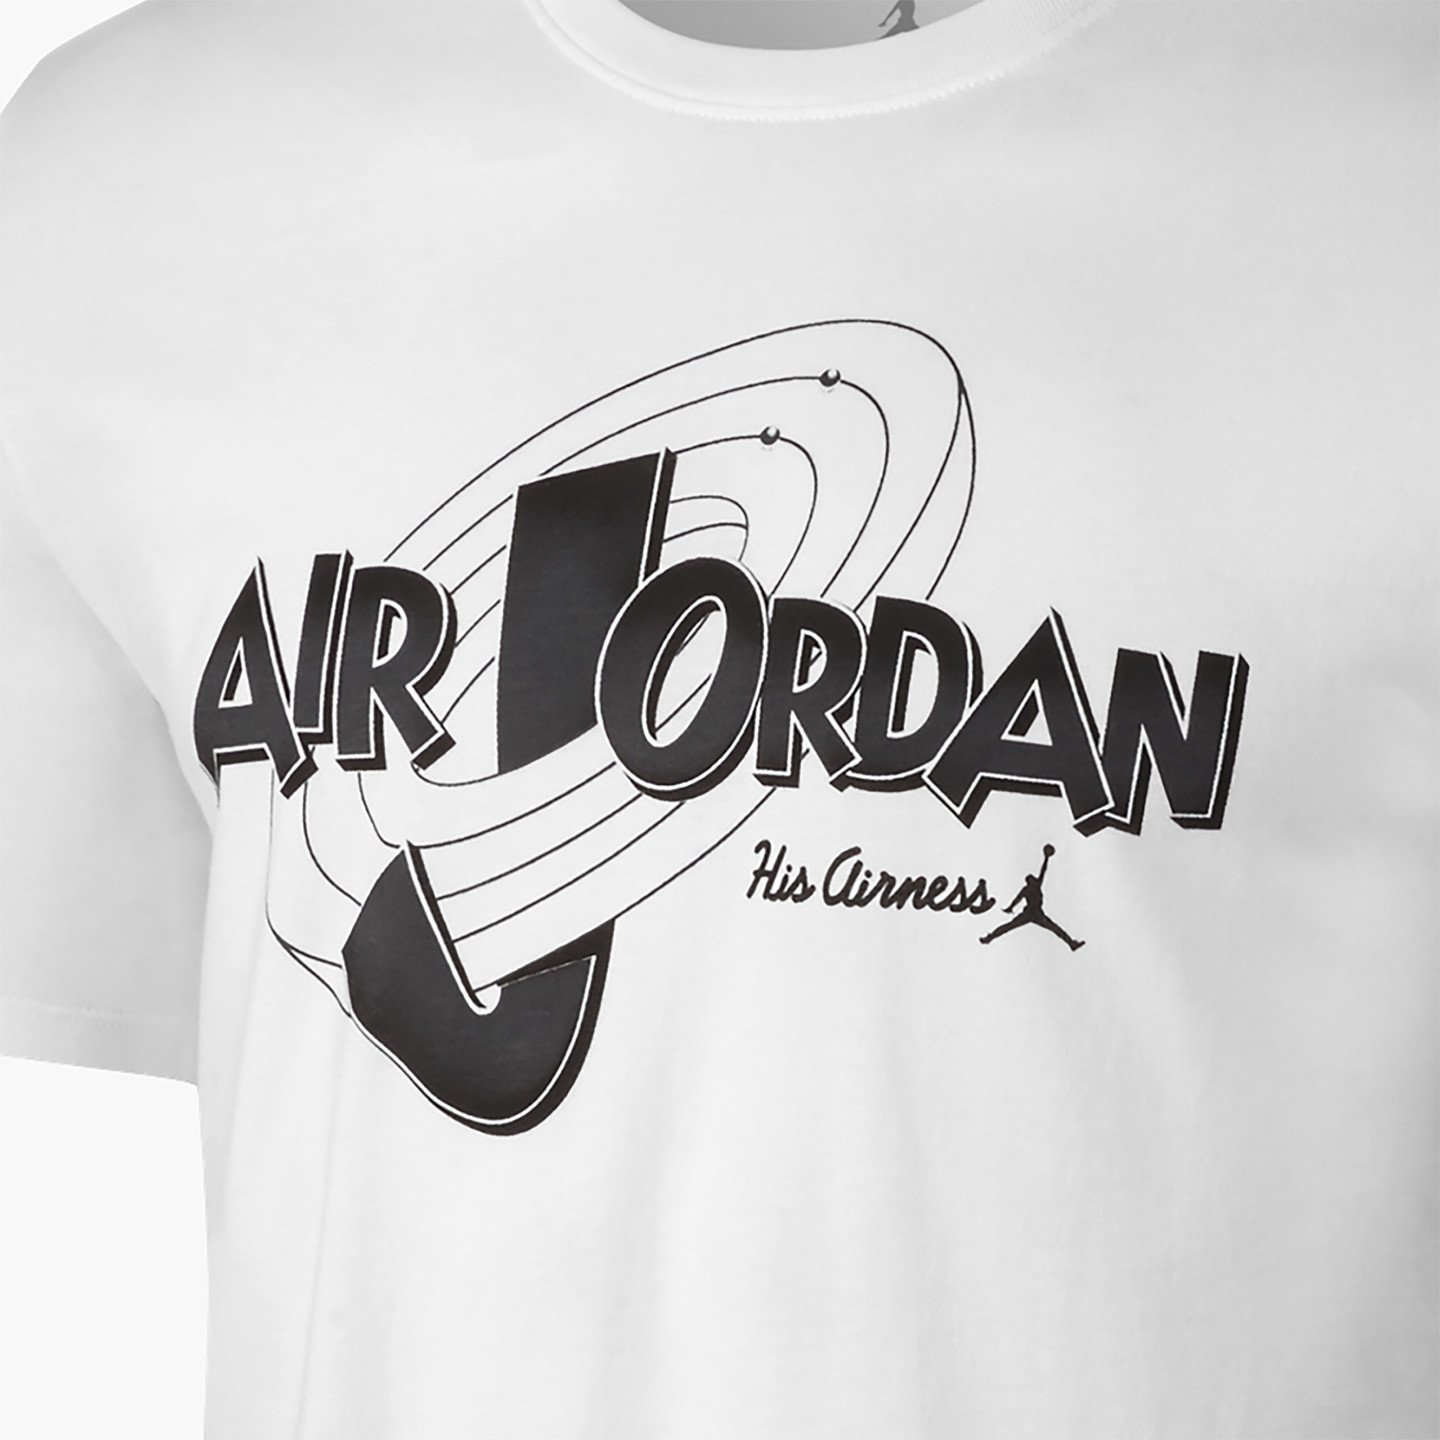 Jordan Air Jordan 11 T-Shirt White / Black 823718-100-M